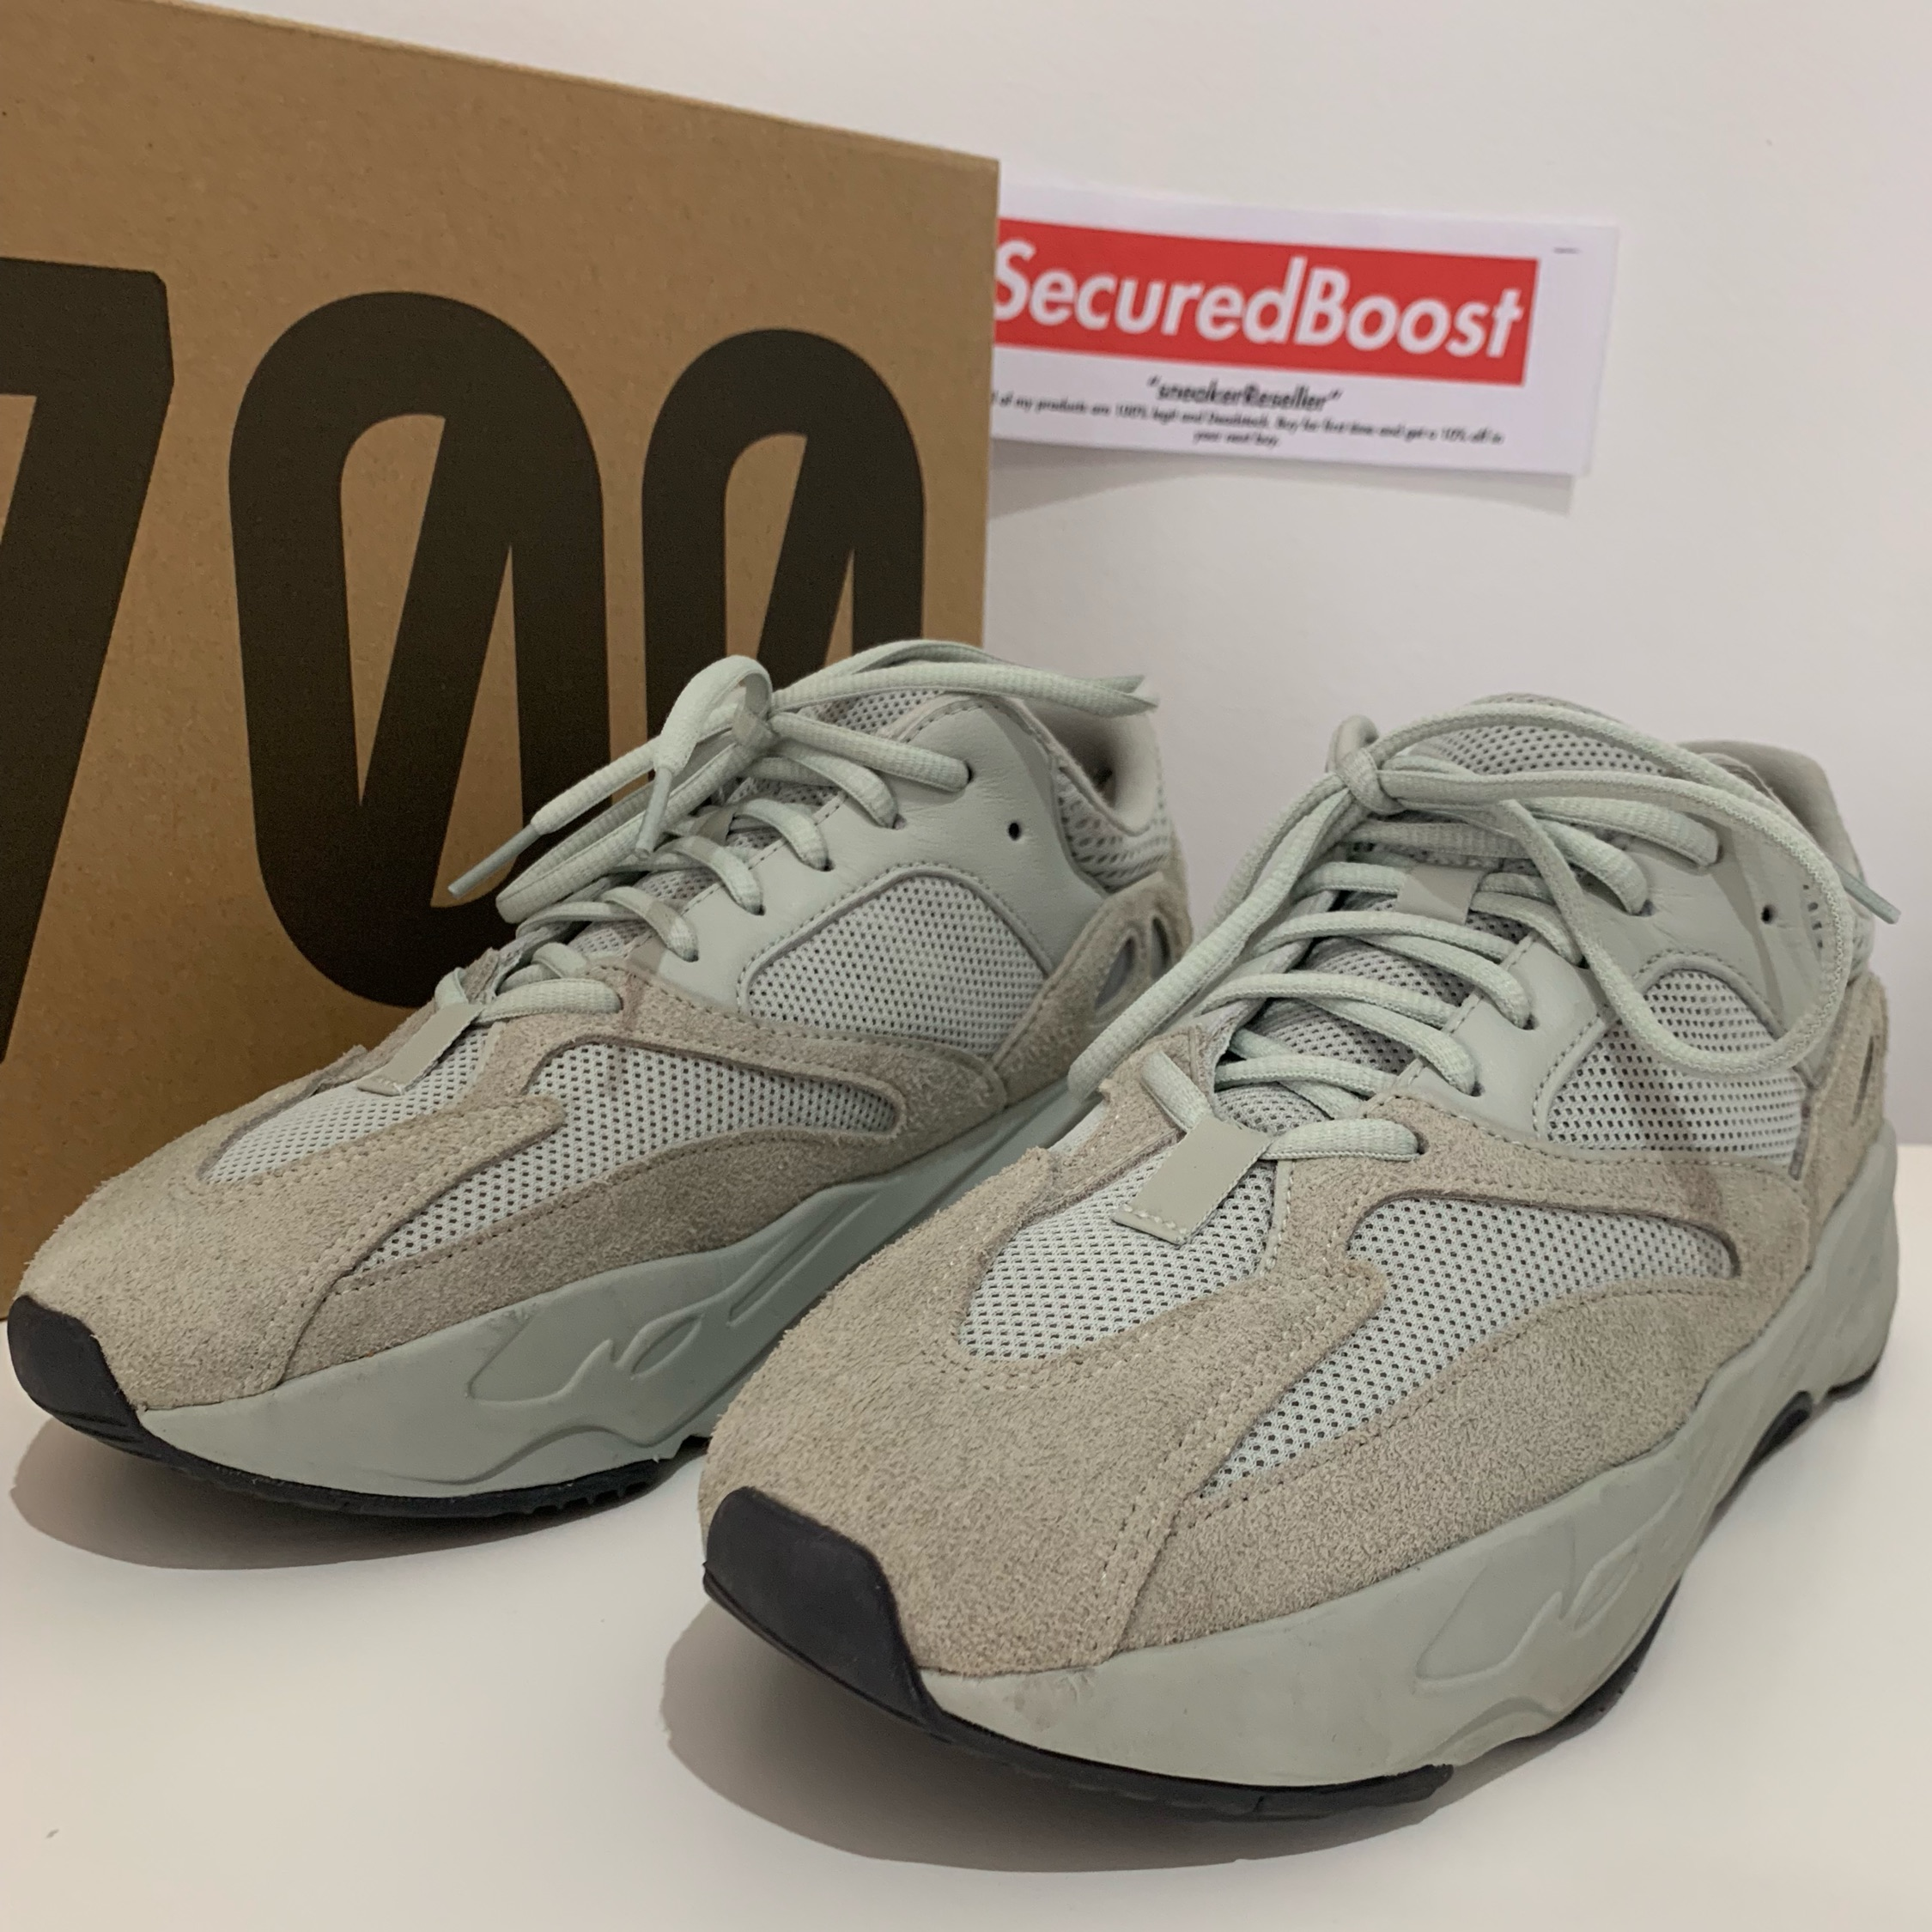 low priced 24877 d1a56 Adidas Yeezy Boost 700 'Salt' Size Us9.5